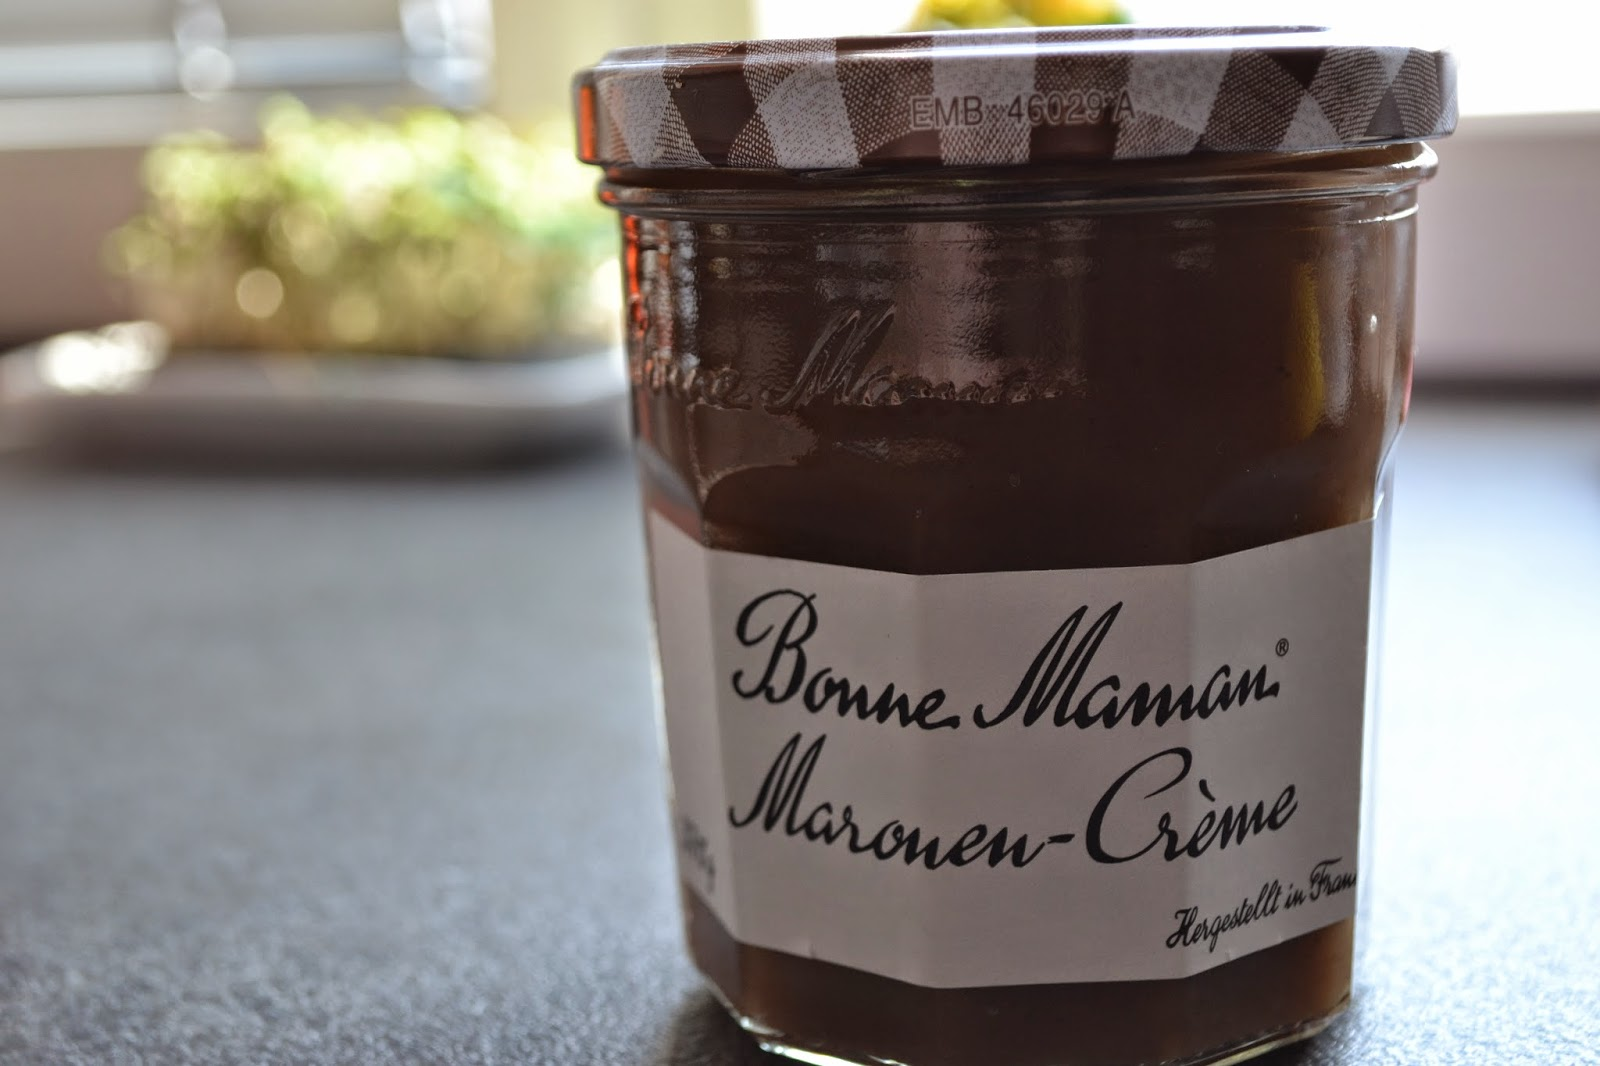 Maronen-Creme (c) zuckerstaub.at